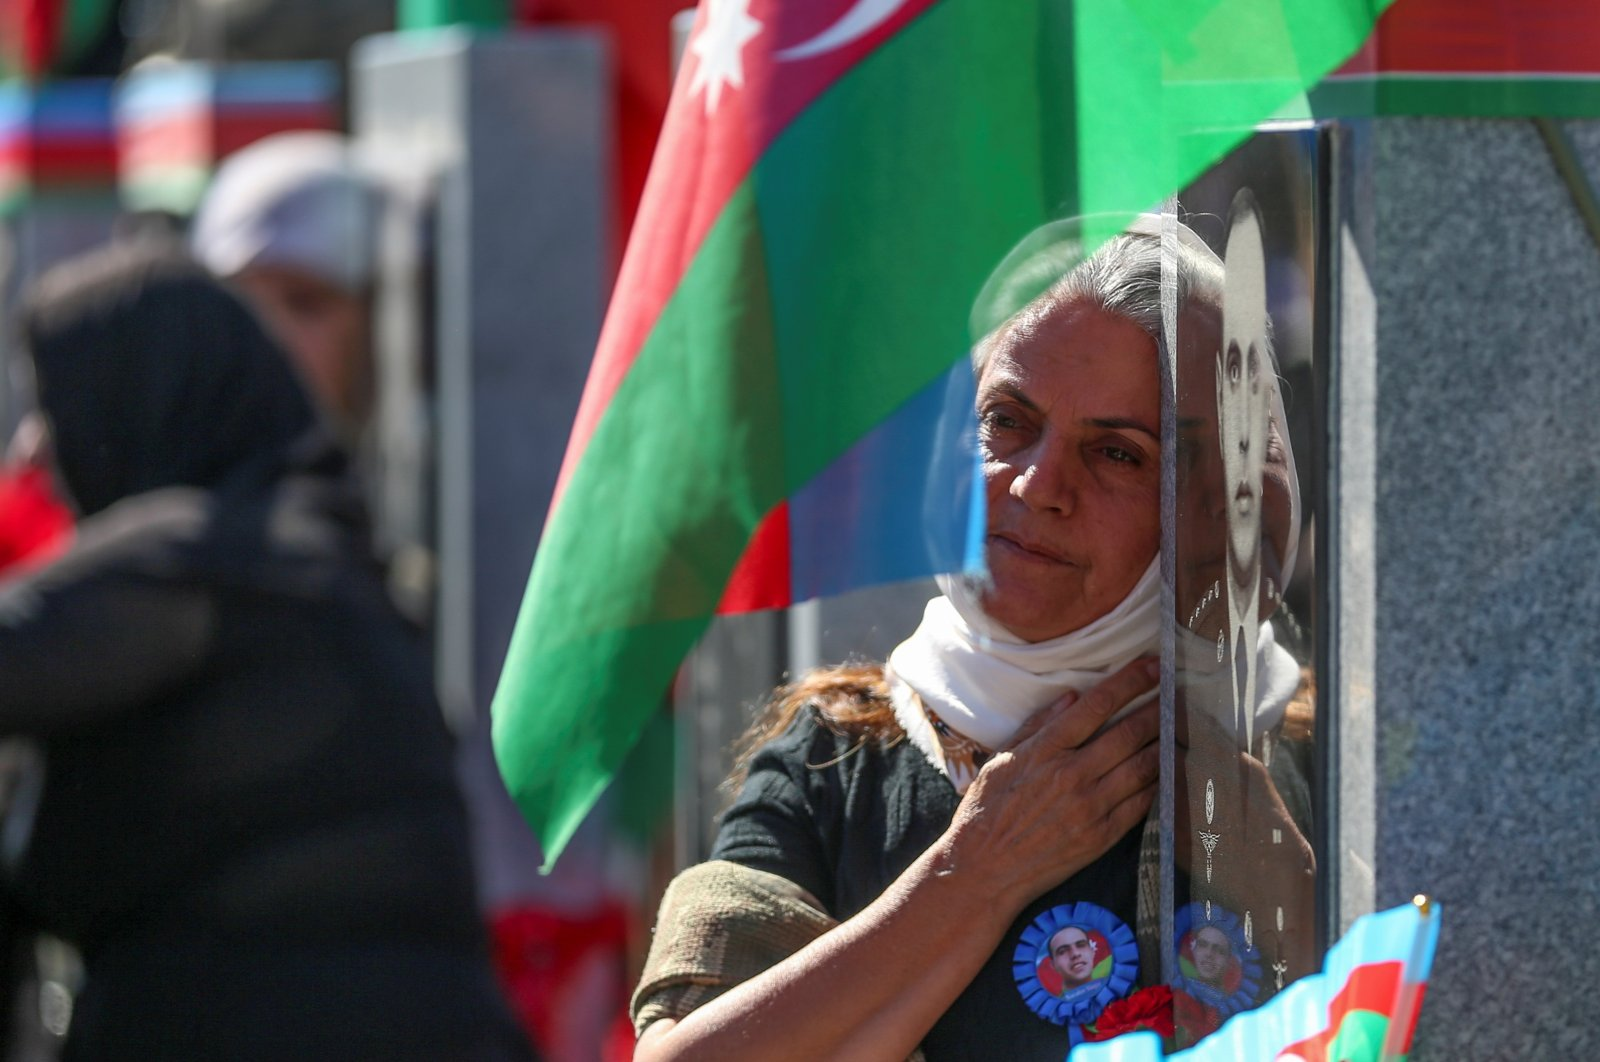 A woman grieves at a cemetery during commemorations for Azerbaijani service members killed in the conflict over the region of Nagorno-Karabakh on its first anniversary, in Baku, Azerbaijan, Sept. 27, 2021. (Reuters Photo)